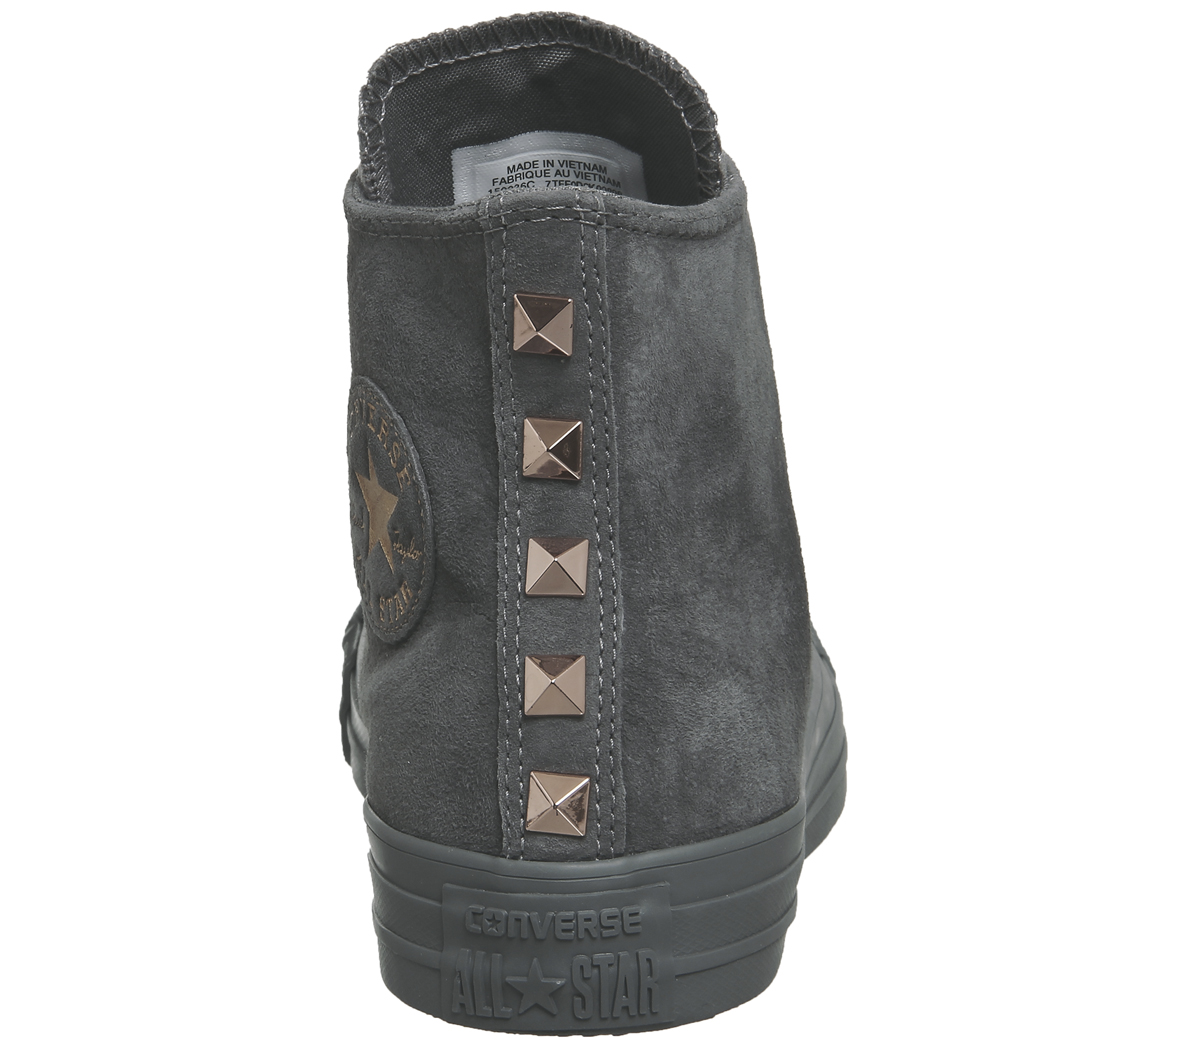 7ac6b726cea6 Sentinel Womens Converse All Star Hi Leather MASON GREY STUD EXCLUSIVE  Trainers Shoes